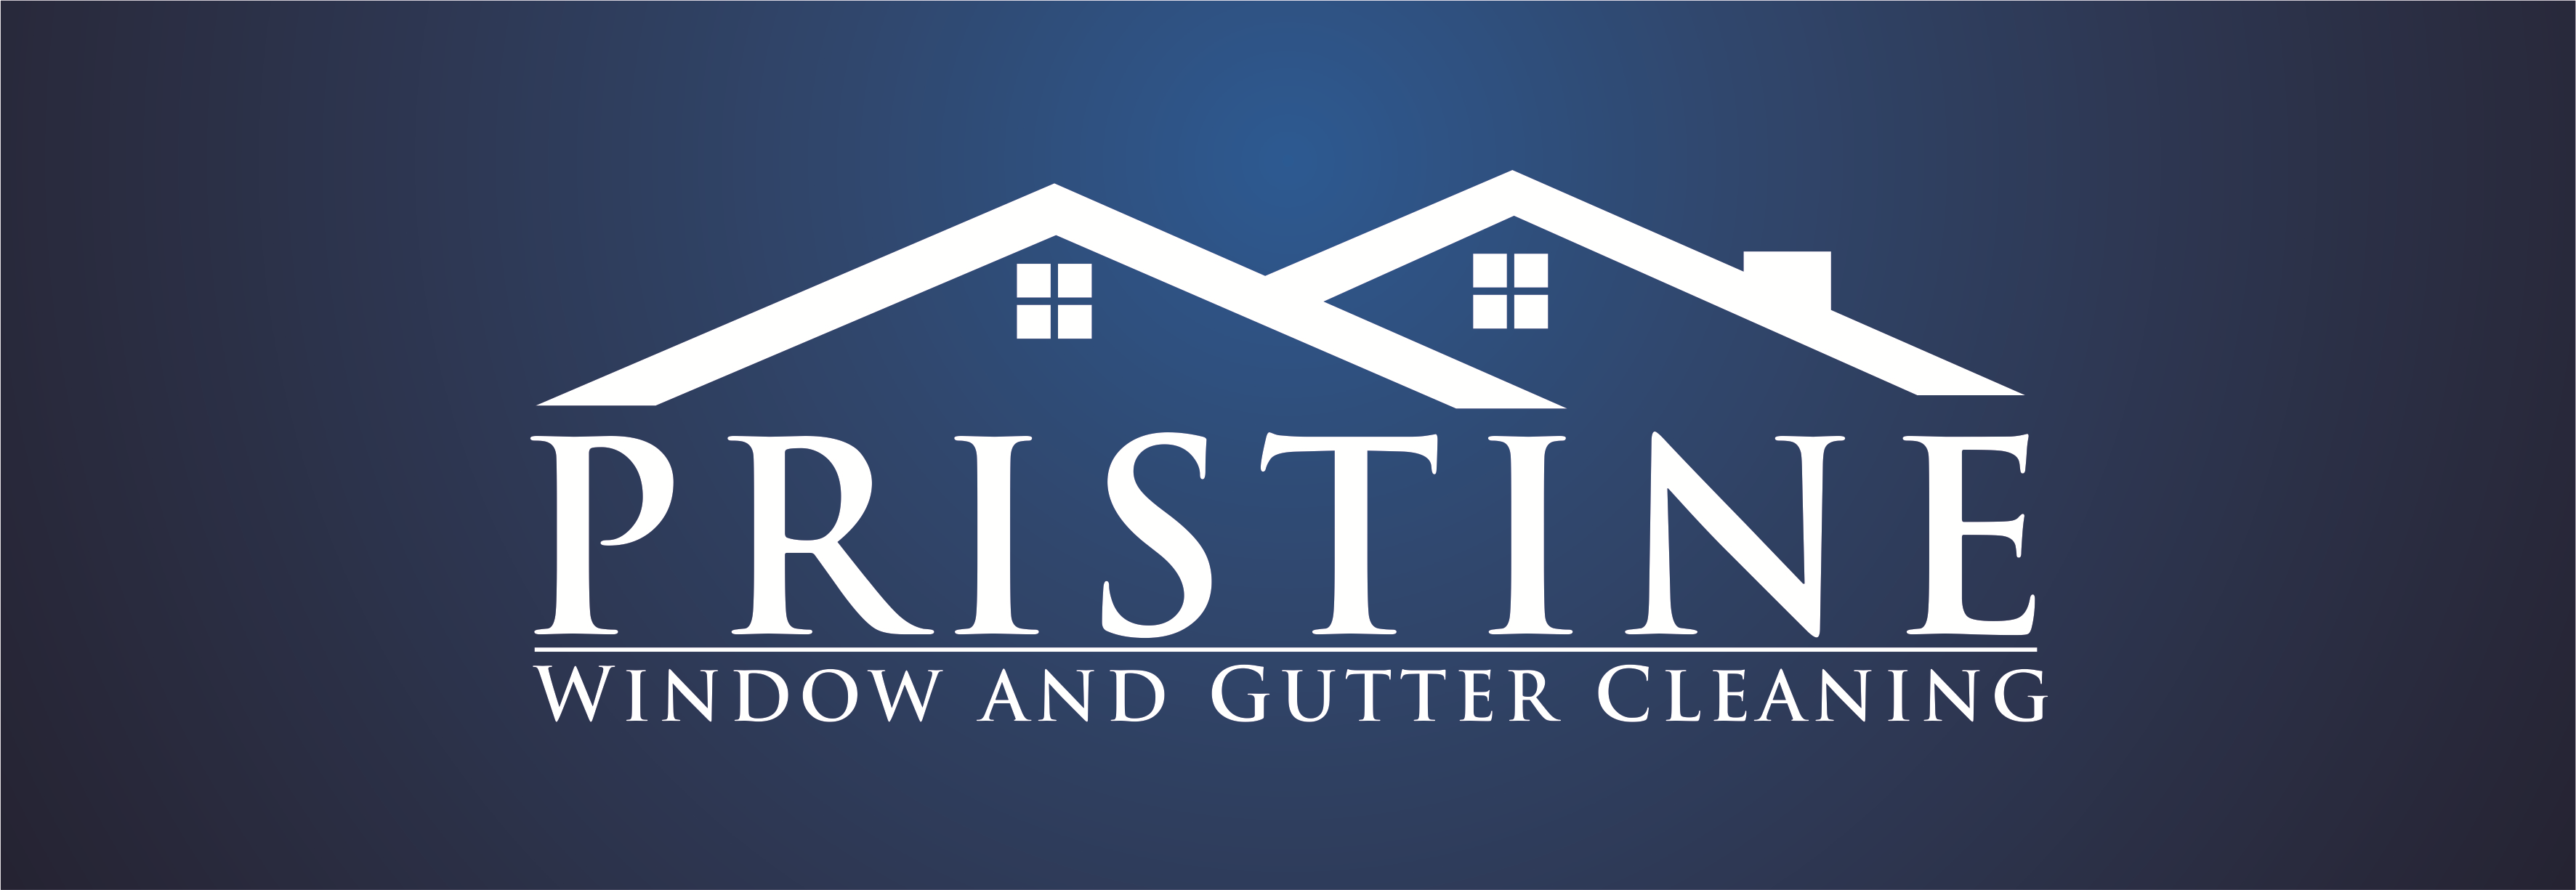 Pristine Window and Gutter Cleaning, About Us